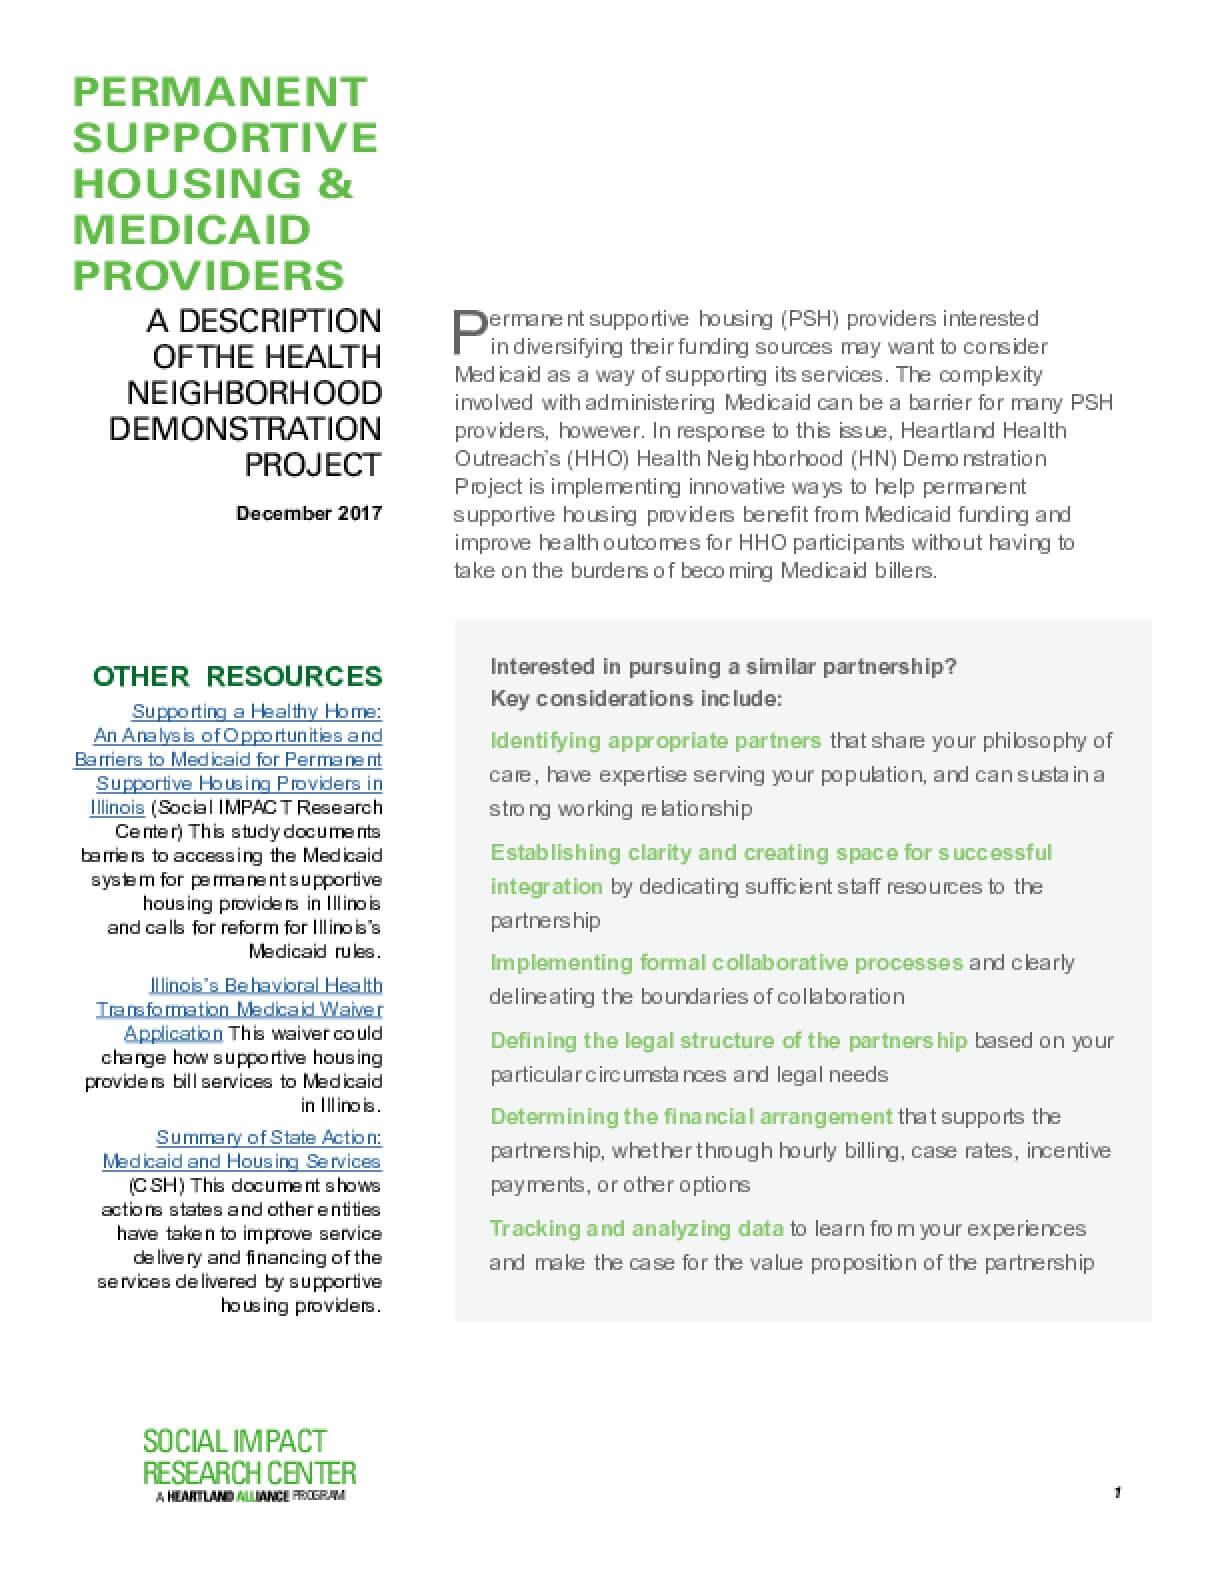 Permanent Supportive Housing & Medicaid Providers: A Description of the Health Neighborhood Demonstration Project